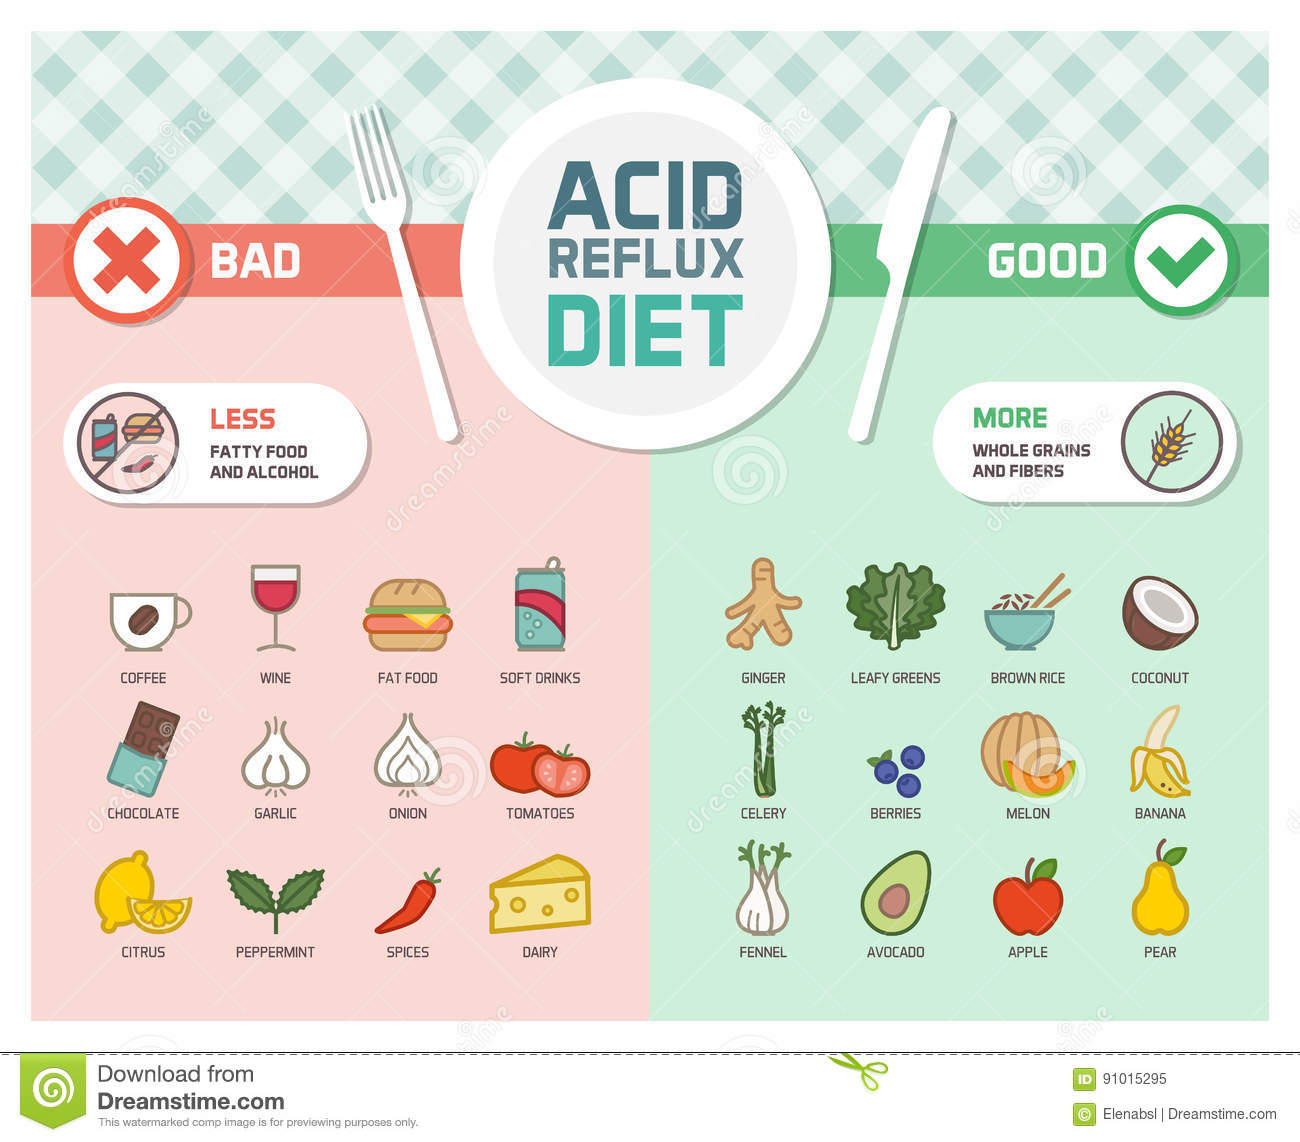 acid reflux prevention diet stock vector - image: 91015295, Skeleton